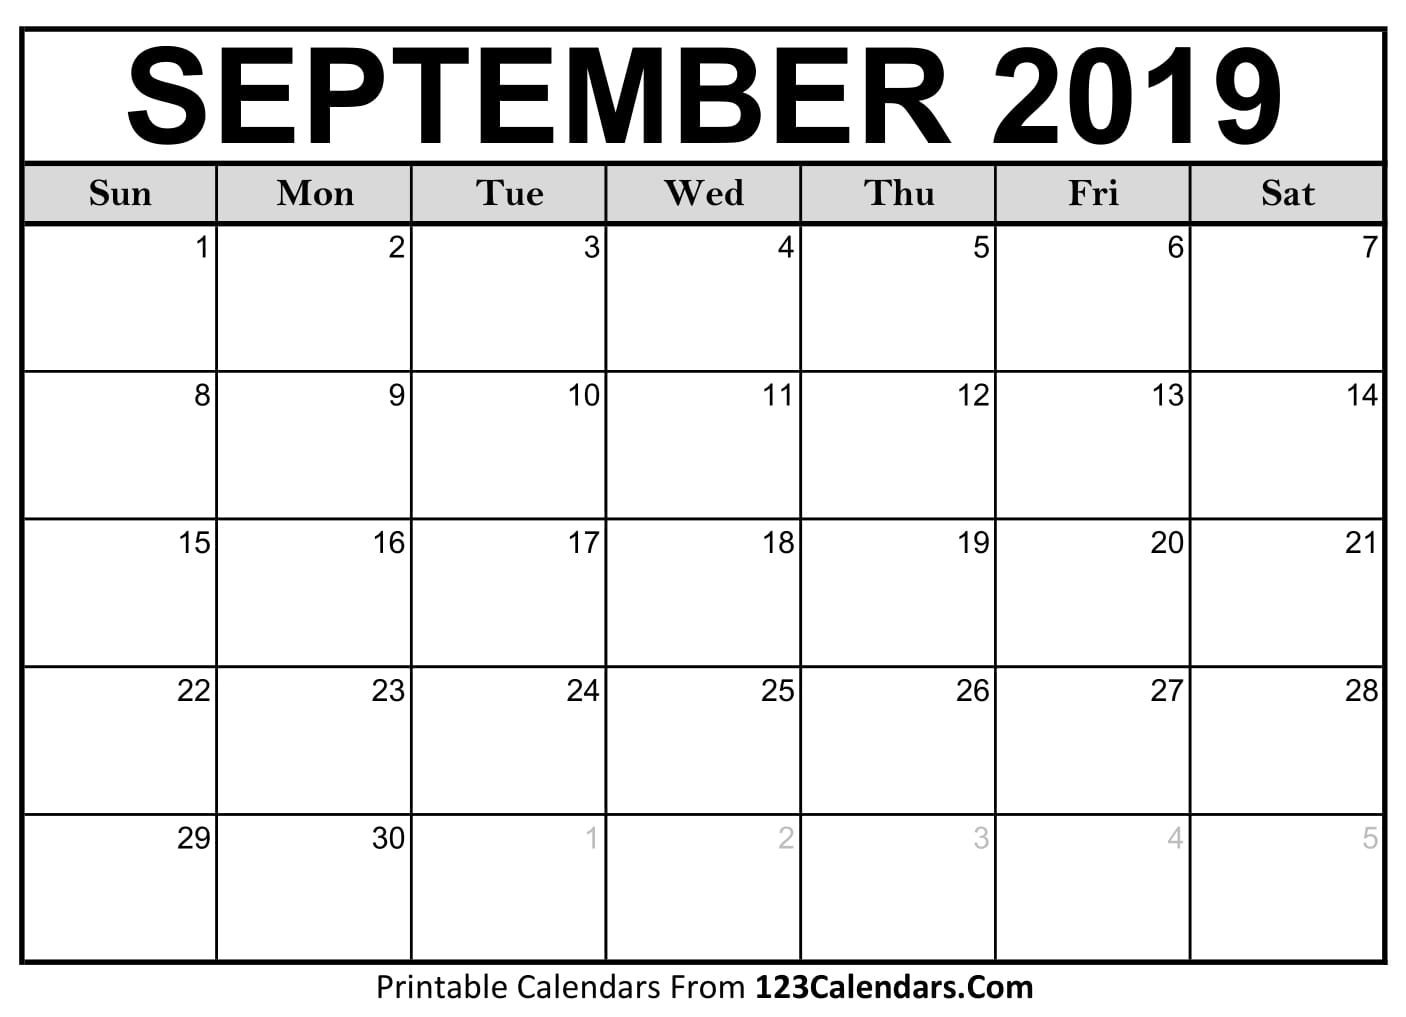 Calendar September : September calendar printable template with holidays